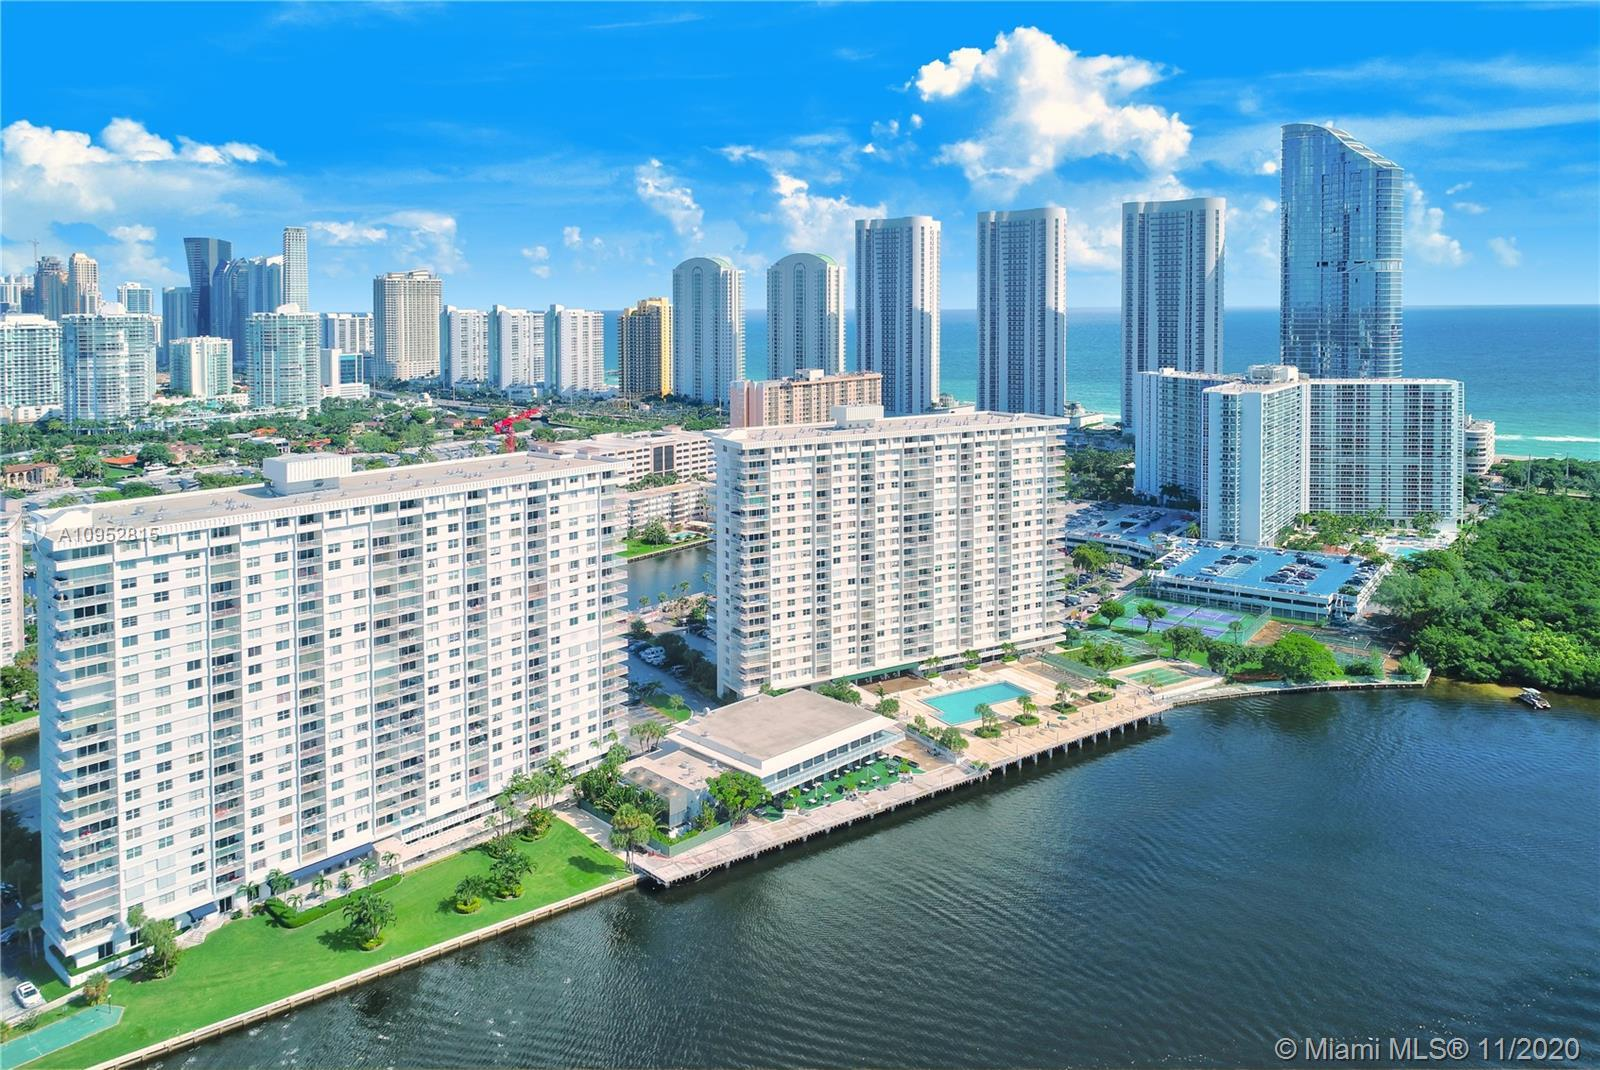 EXCELLENT OPPORTUNITY TO OWN A SPACIOUS 2/2 CONDO WITH GREAT WATERFRONT LOCATION AT AN UPSCALE GATED